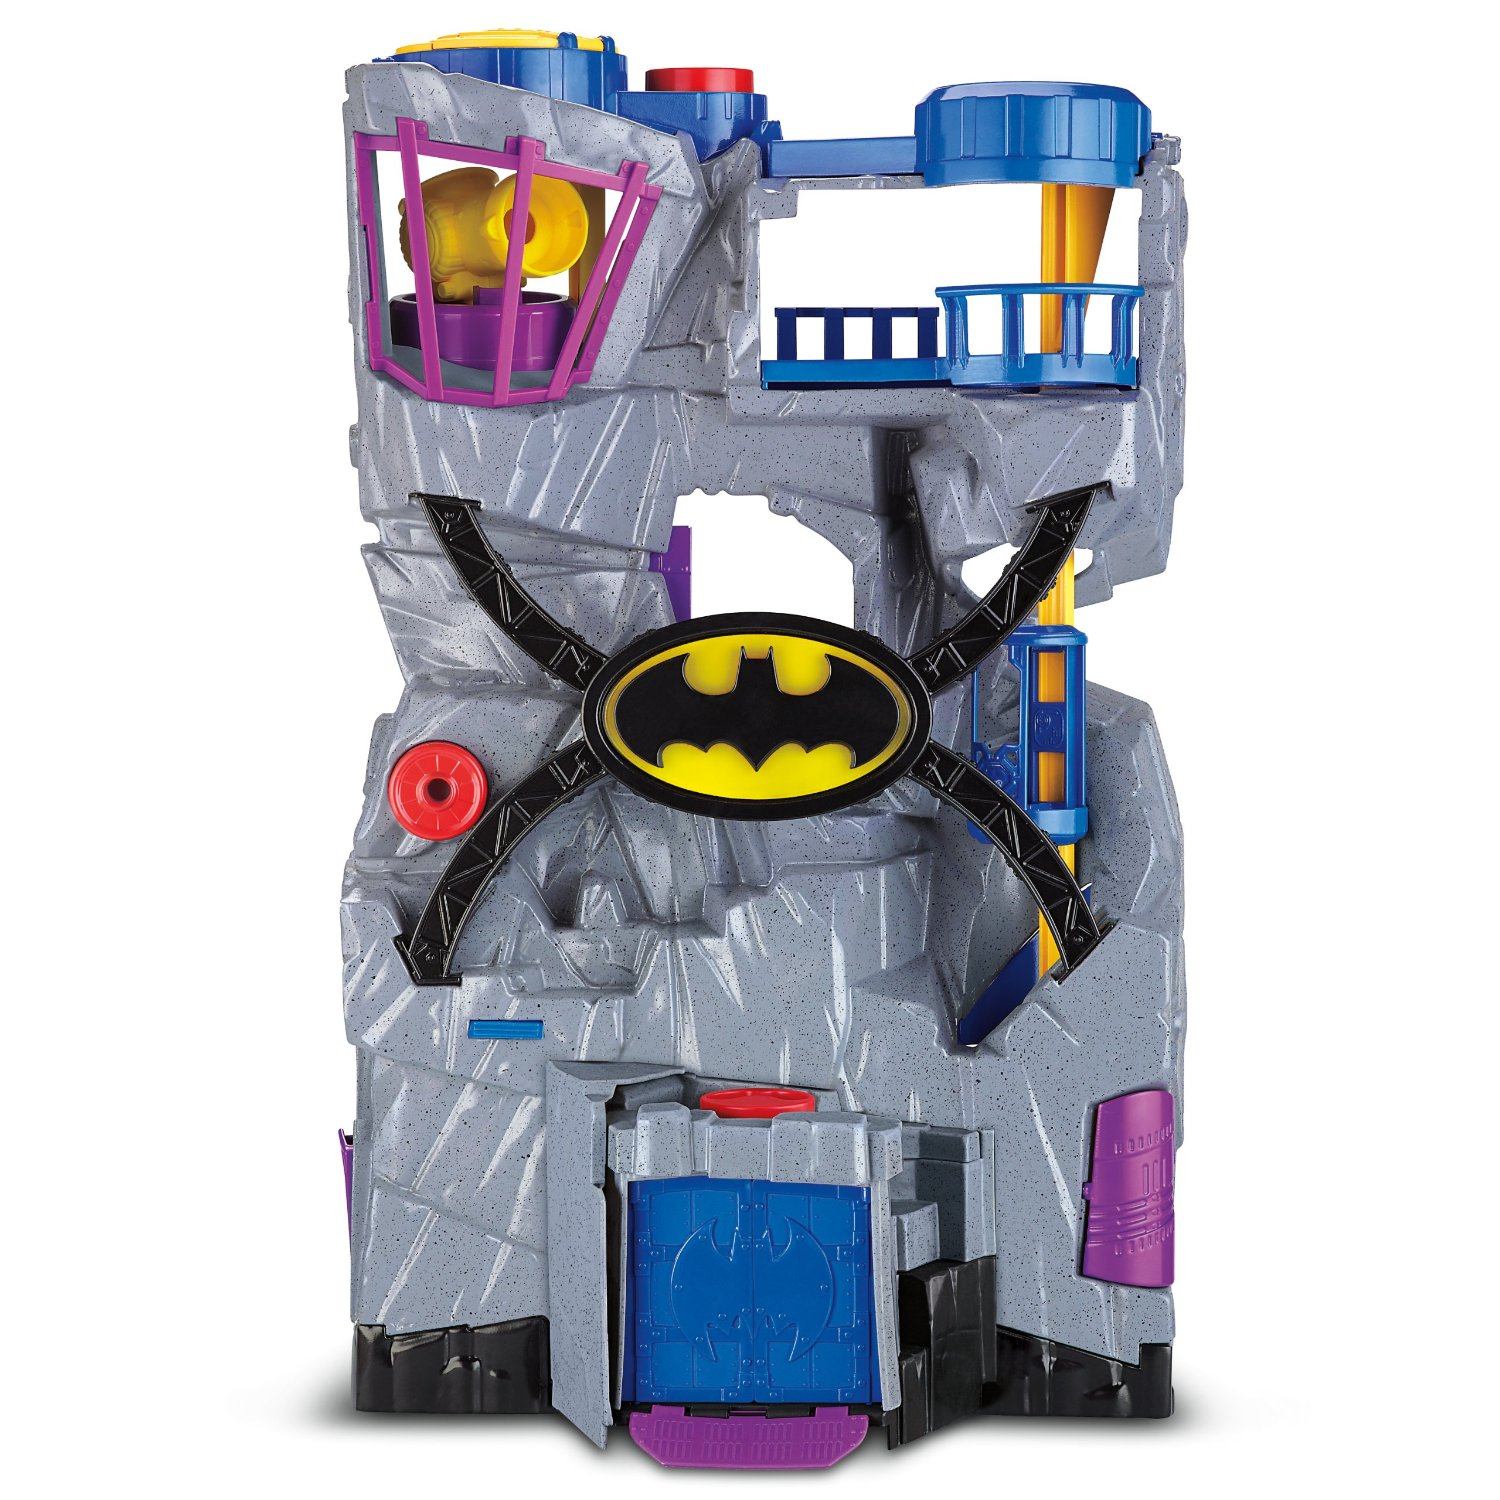 Batman Toys For Boys For Christmas : Fisher price imaginext sets at over off batcave